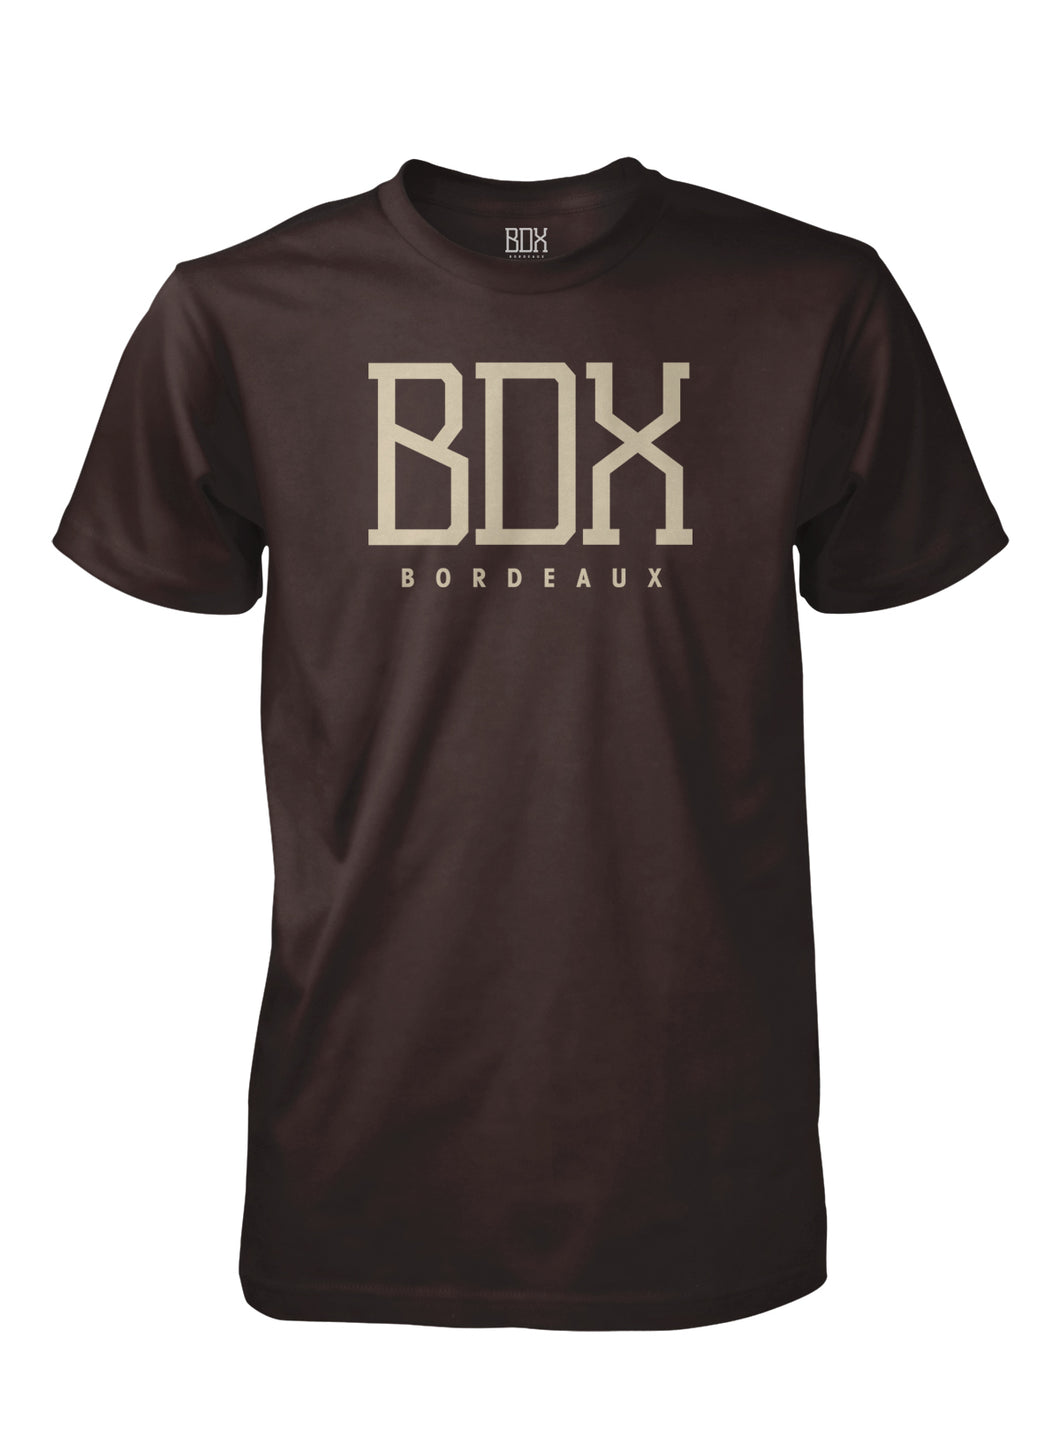 BDX Bordeaux DK Chocolate in Brown Print with Brown back print of Neighborhoods